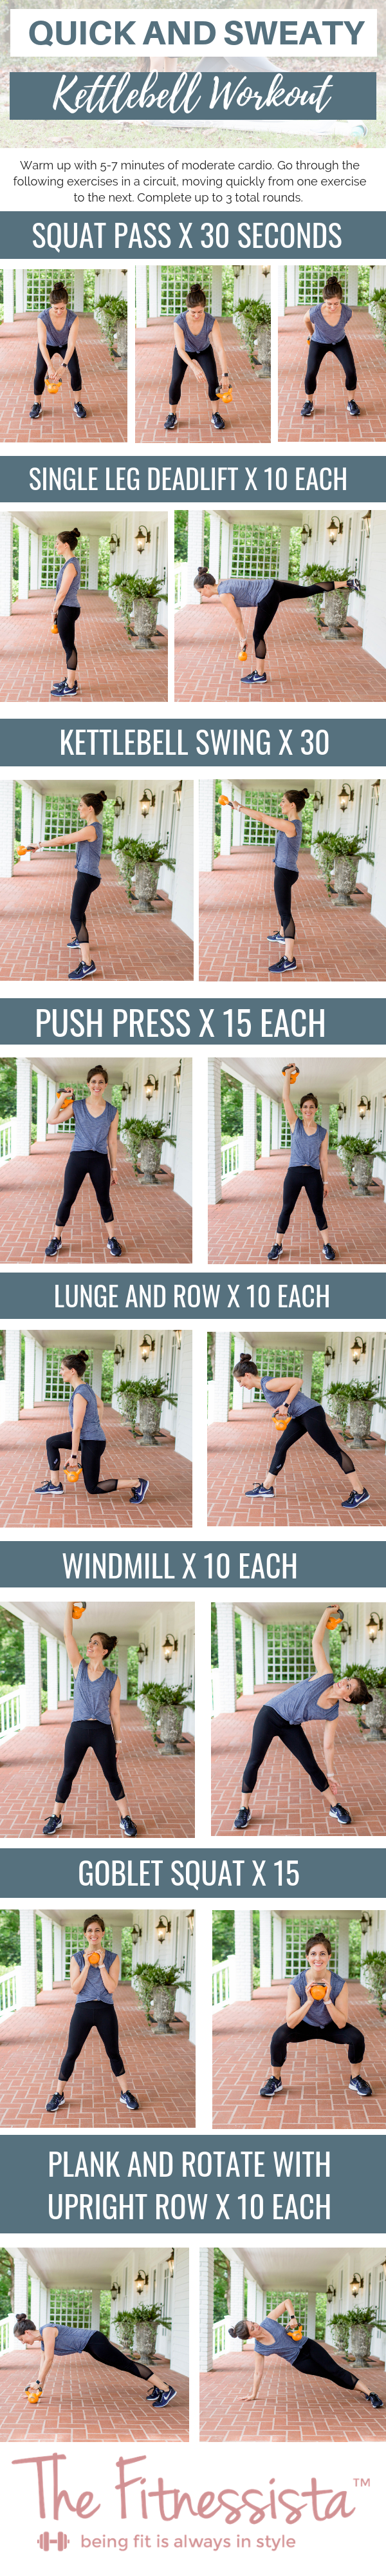 QUICK AND SWEATY KETTLEBELL WORKOUT